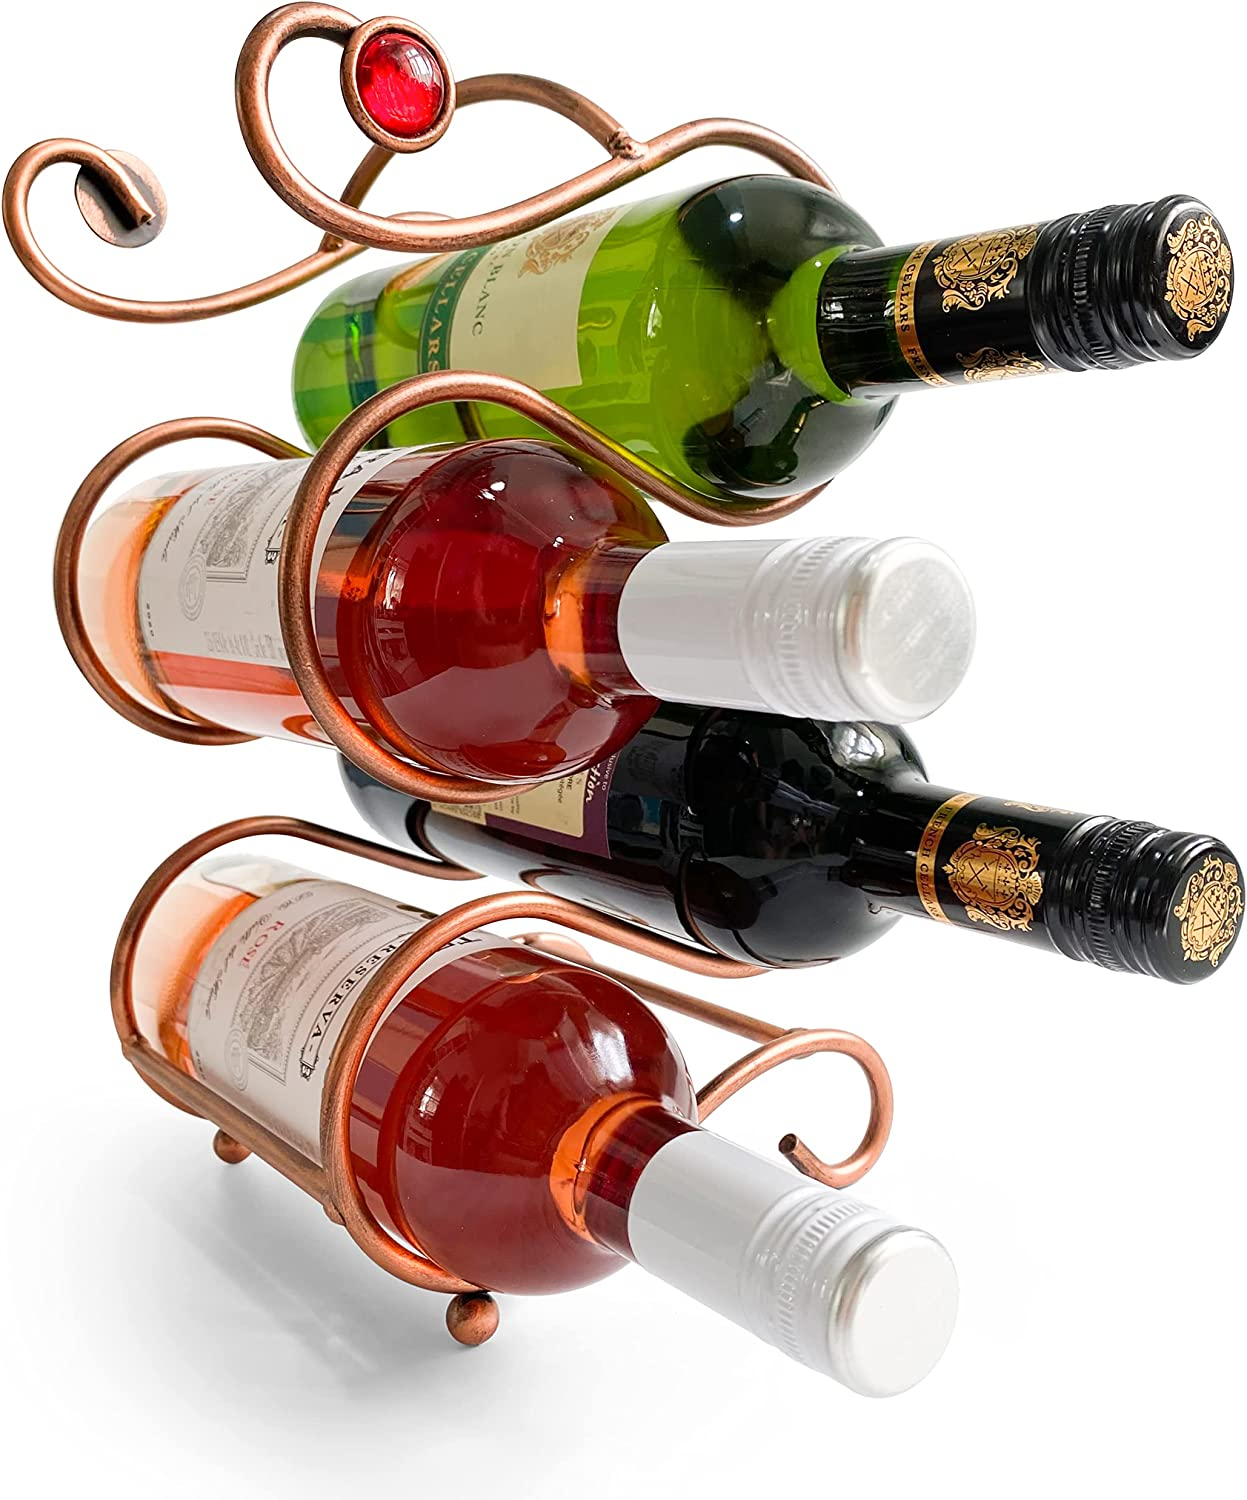 Retro Style Wine Rack Countertop Bottles 4 Holds Uniquely Los Ranking TOP1 Angeles Mall